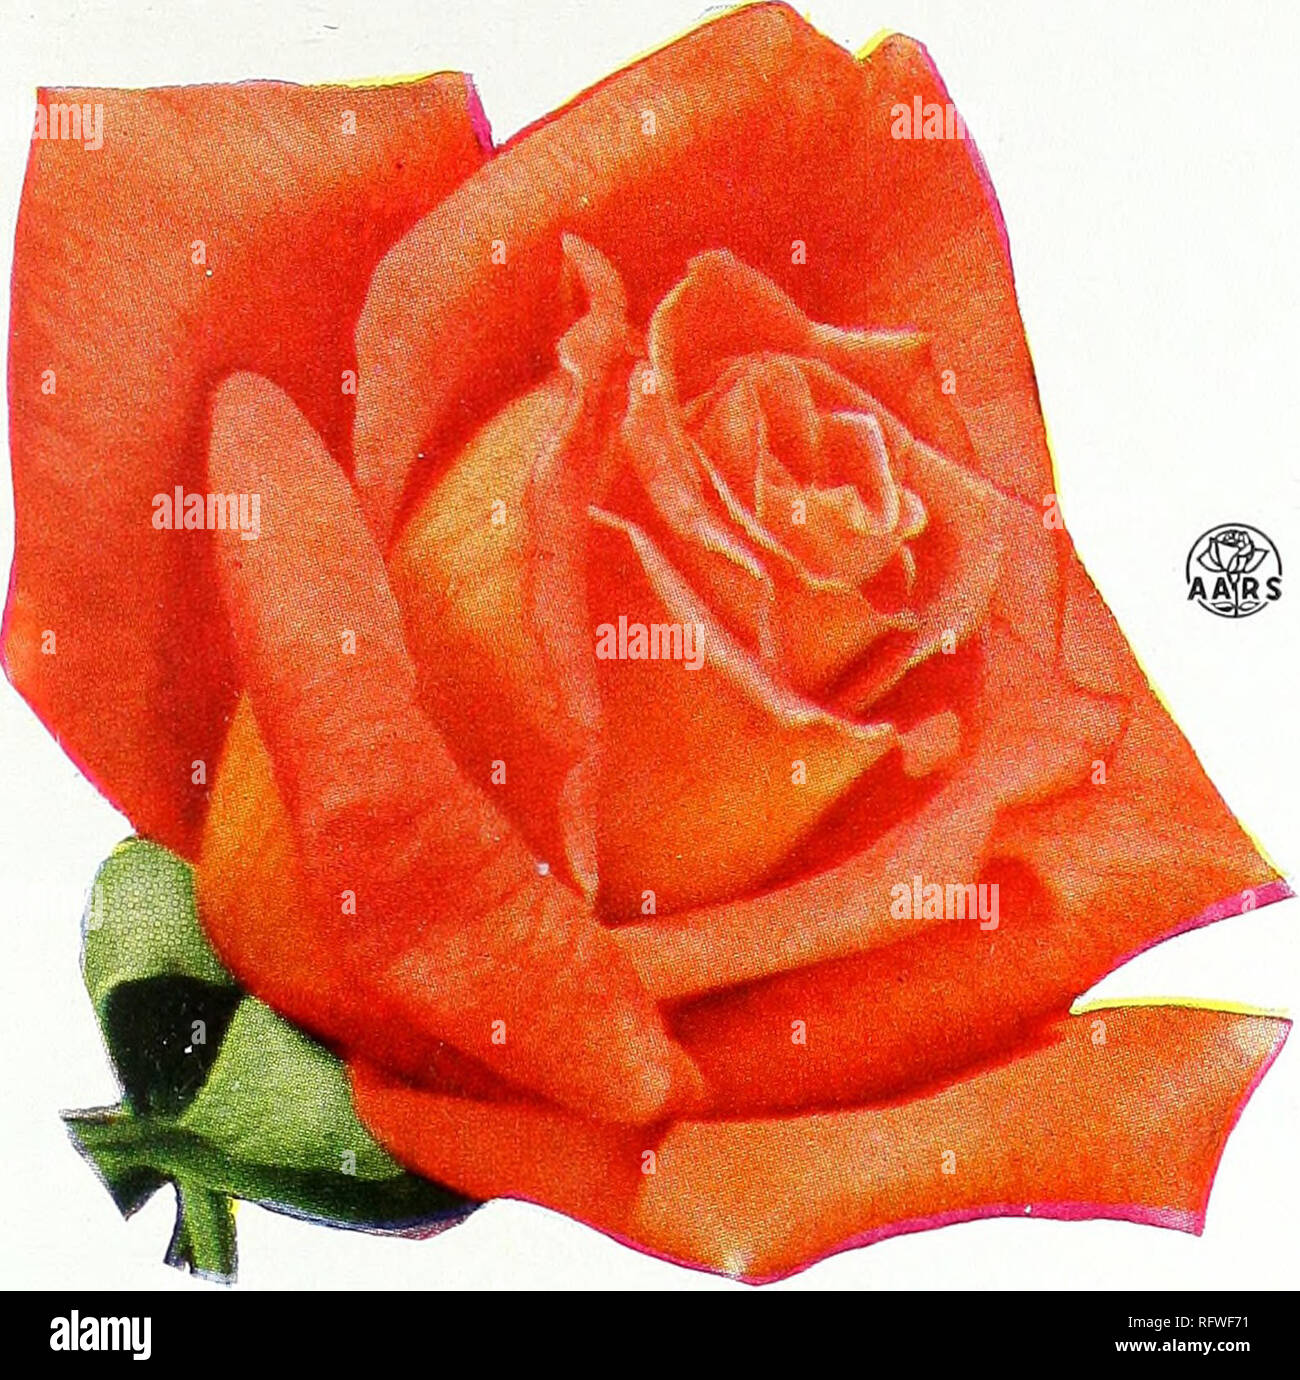 capitol city seeds for 1957 nurseries horticulture catalogs bulbs plants catalogs vegetables catalogs garden tools catalogs seeds catalogs 5 great roses for 1957 mojave h t plant patent 1176 2 75 each collection alamy